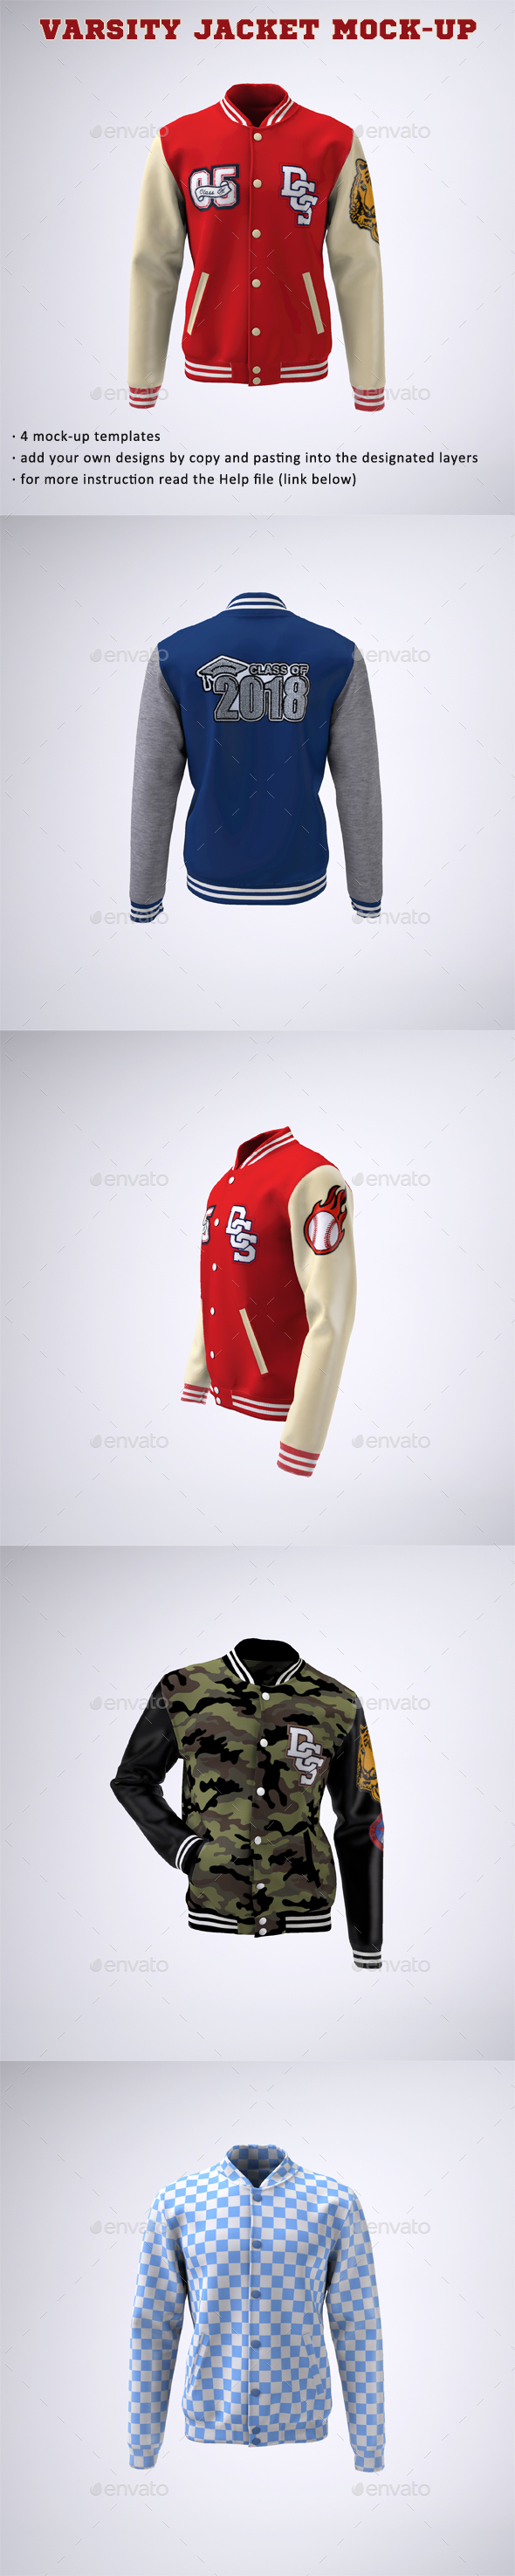 GraphicRiver Varsity Baseball Bomber Jacket Mock-Up 21137977